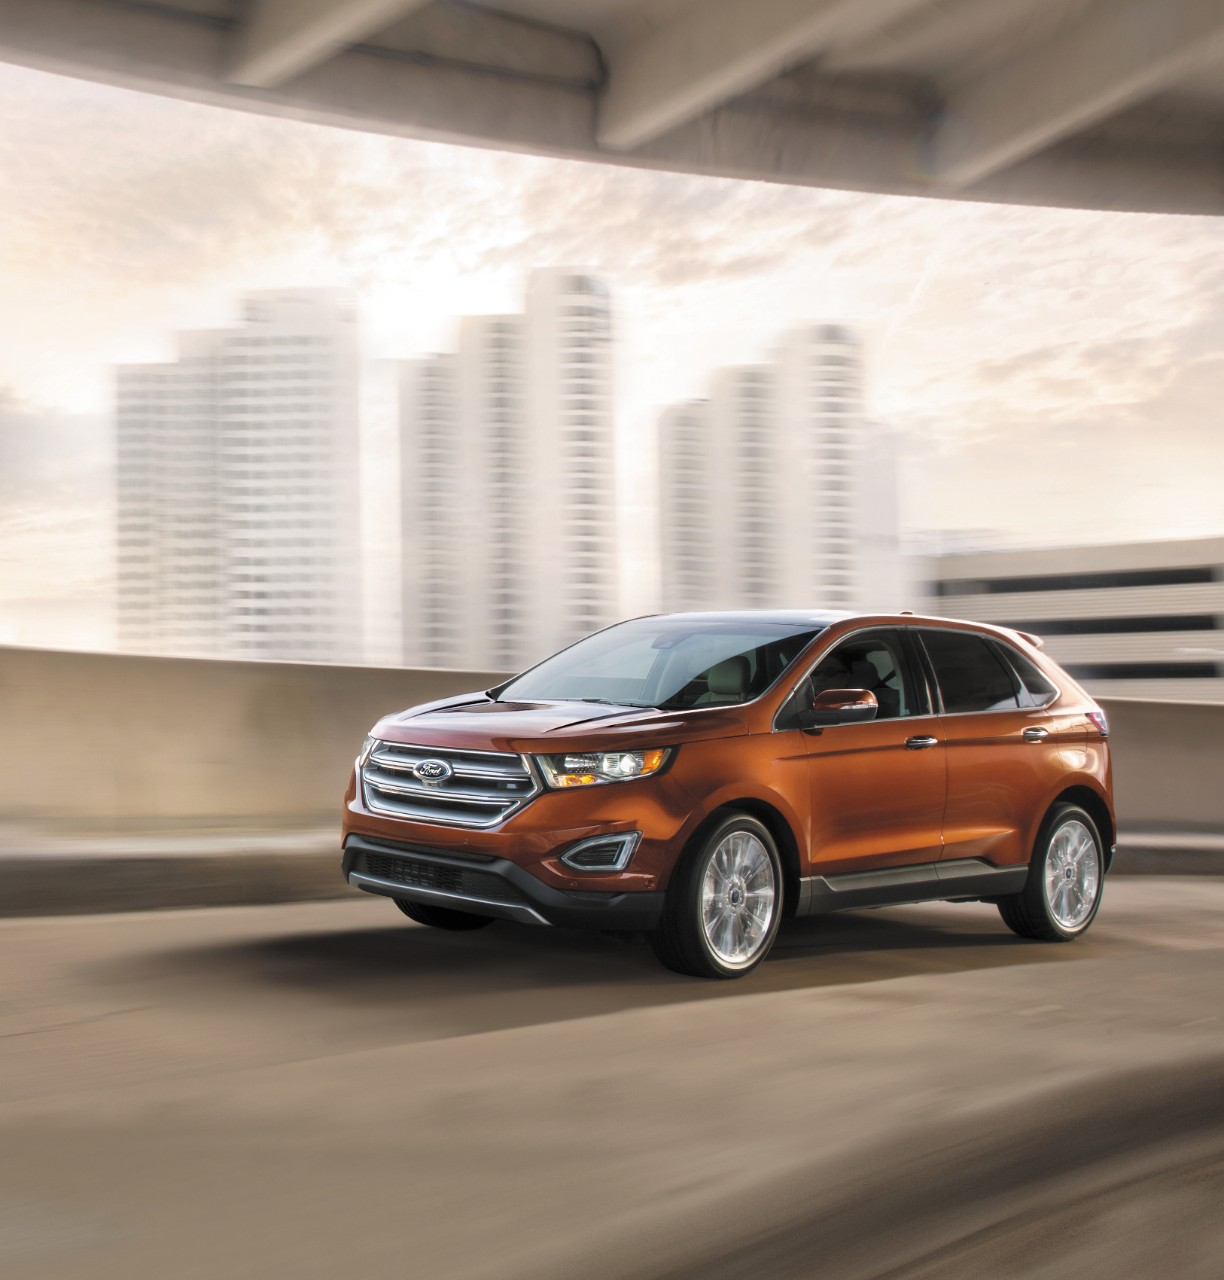 New And Used Ford Edge: Prices, Photos, Reviews, Specs